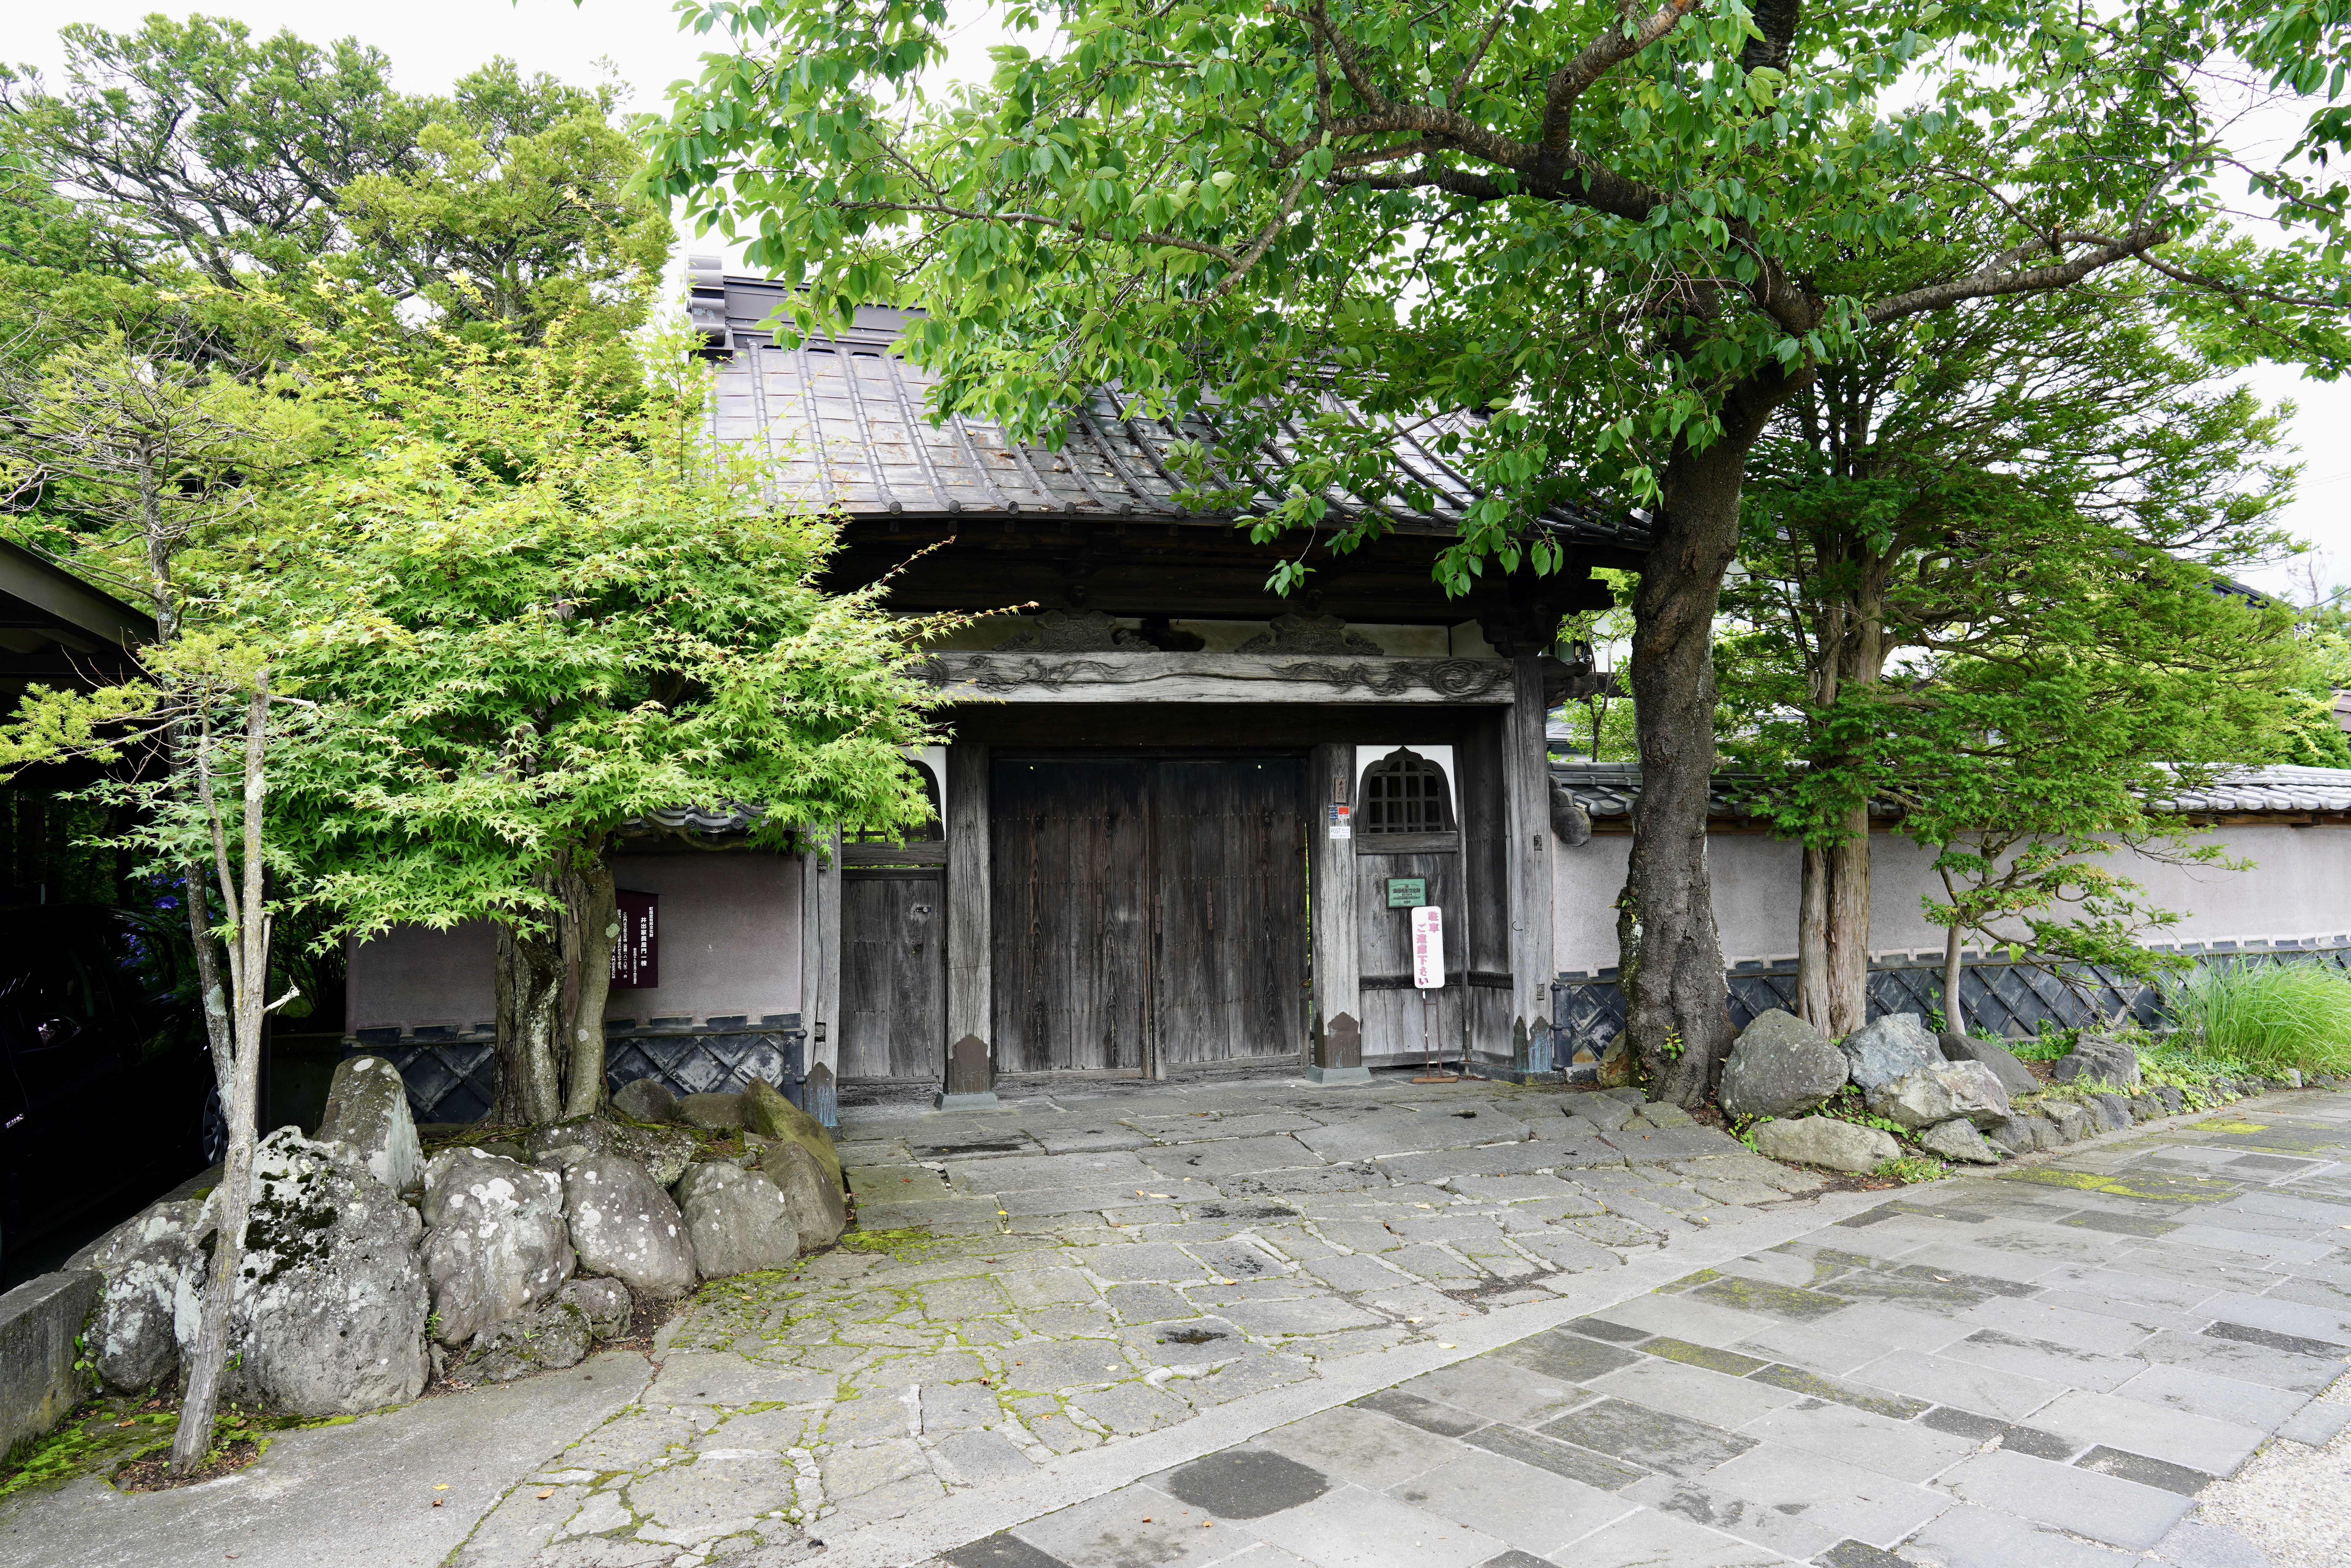 The former entrance to Ide Jyozo (Ide Sake Brewery)